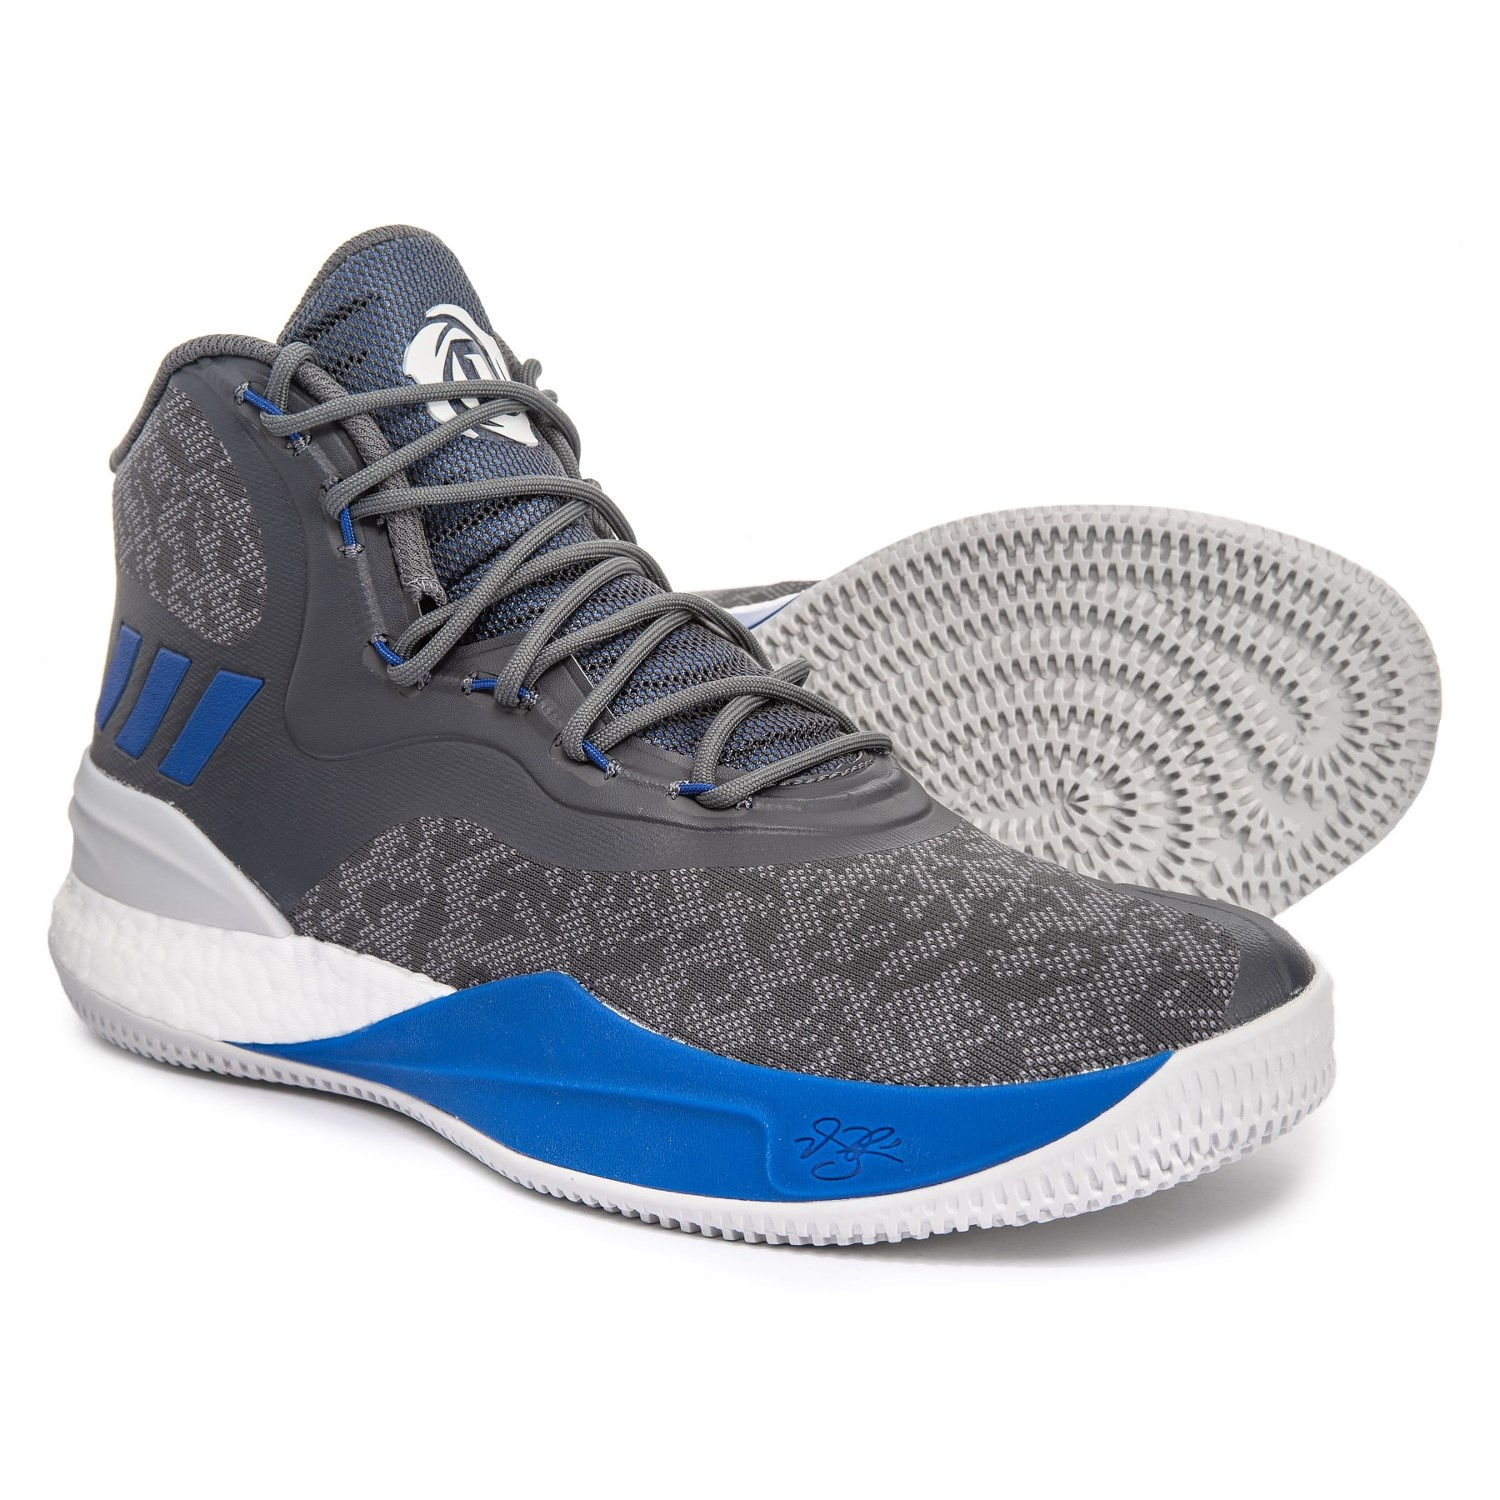 hot sale online 7b646 0a16c adidas Derrick Rose 8 Basketball Shoes (For Men) in GreyBlue Solid